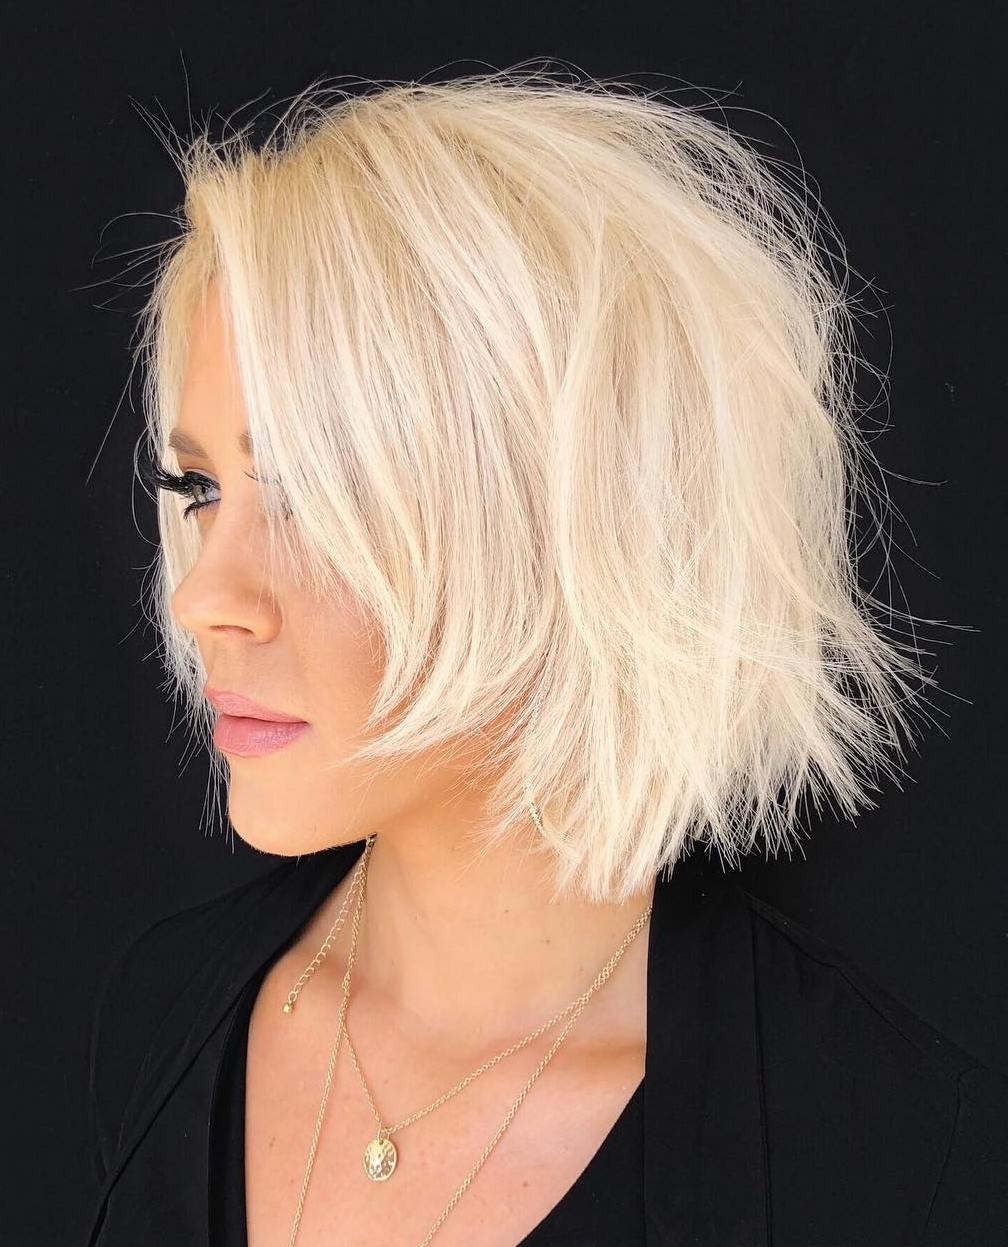 Well Known Gorgeous Wavy White Shag Haircuts Intended For 40 Modern Shag Haircuts For Women To Make A Splash (View 18 of 20)